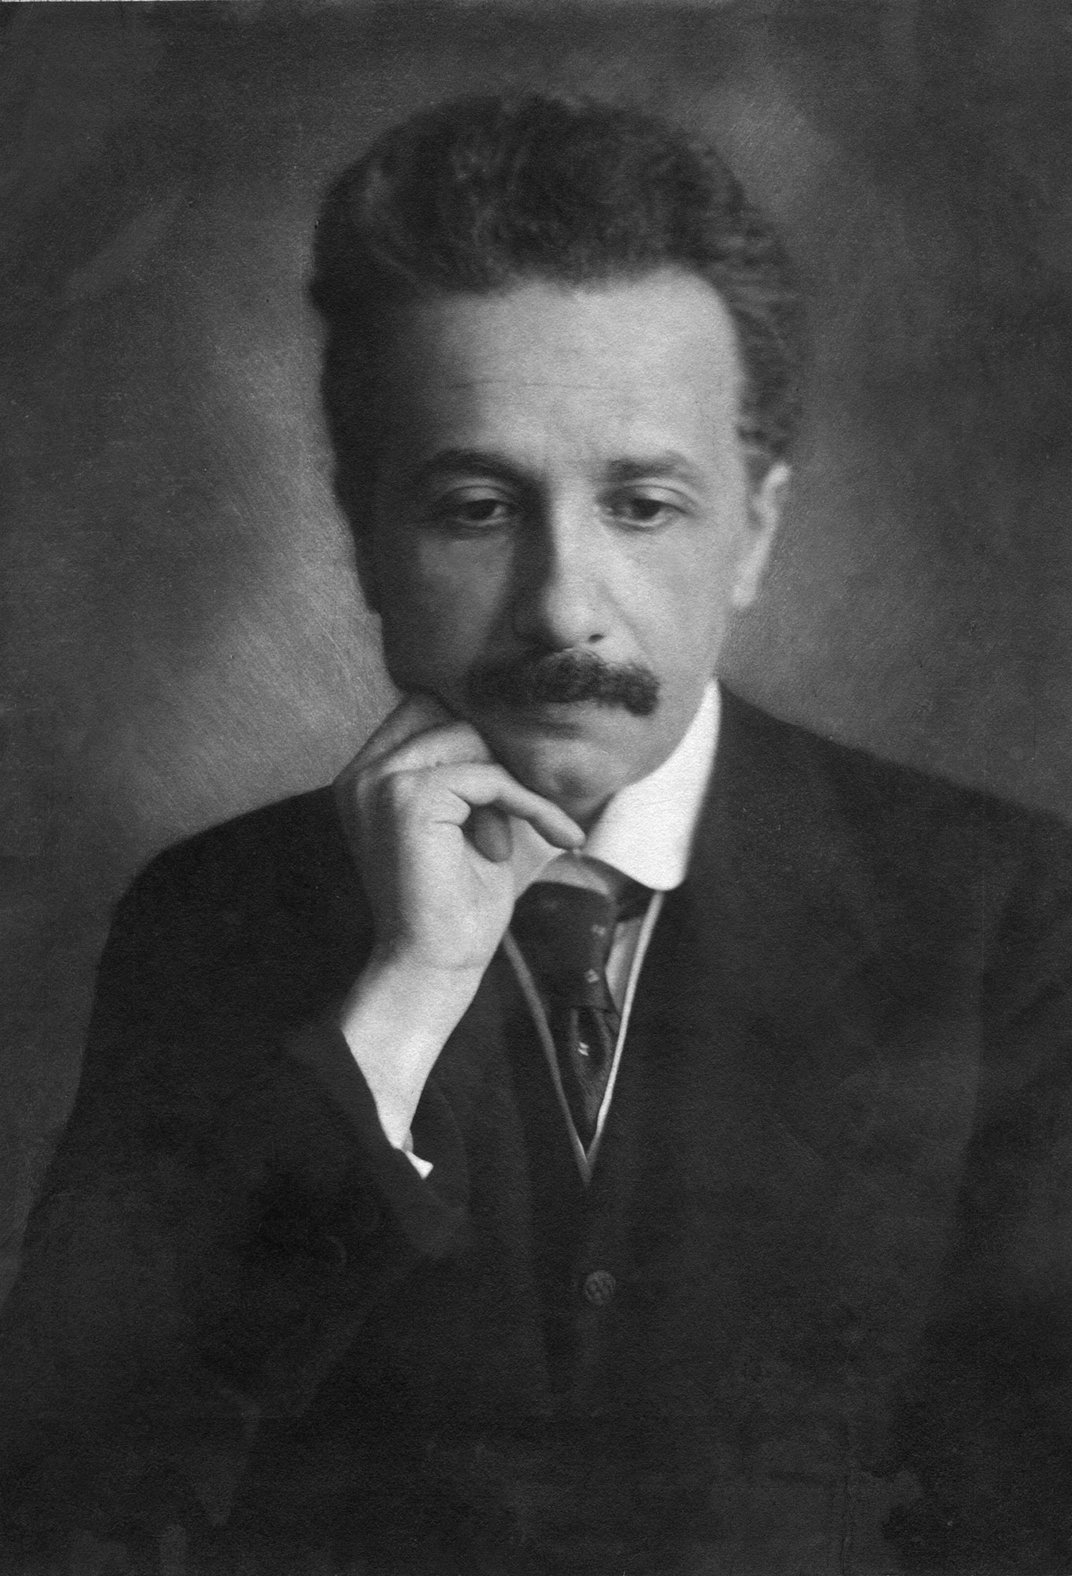 One Hundred Years Ago, Einstein's Theory of General Relativity Baffled the Press and the Public